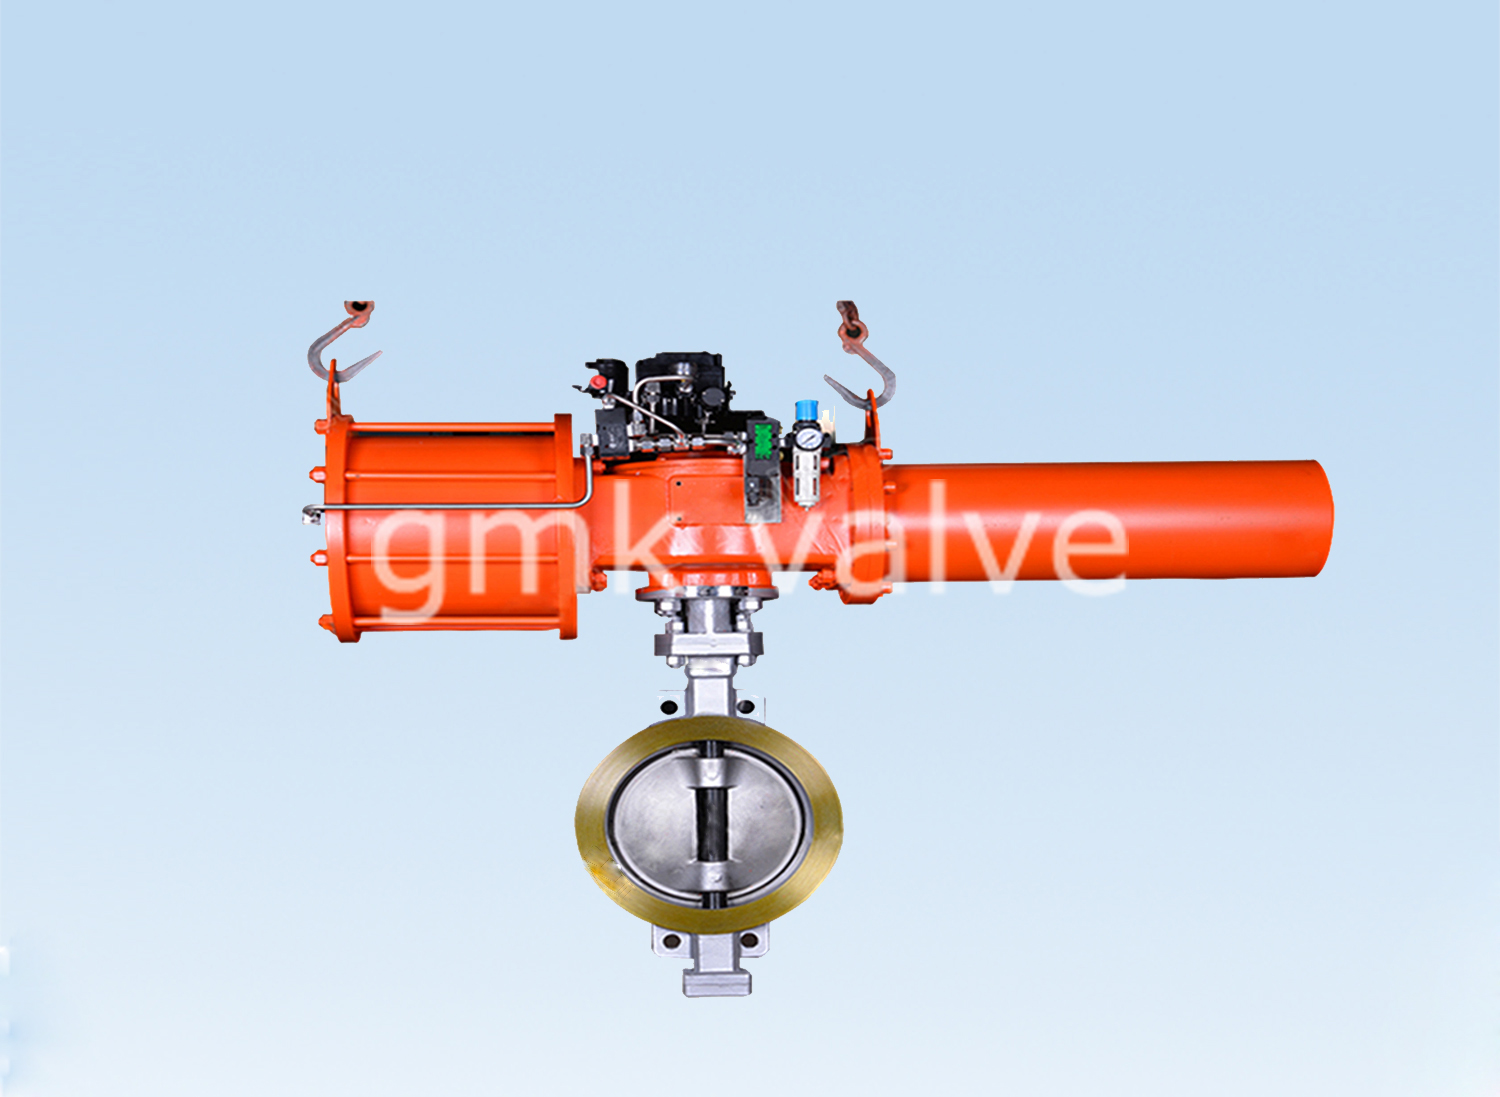 Triple Kushaya Butterfly Valve pamwe Scotch Pejoko Type Pneumatic Actuator Featured Image